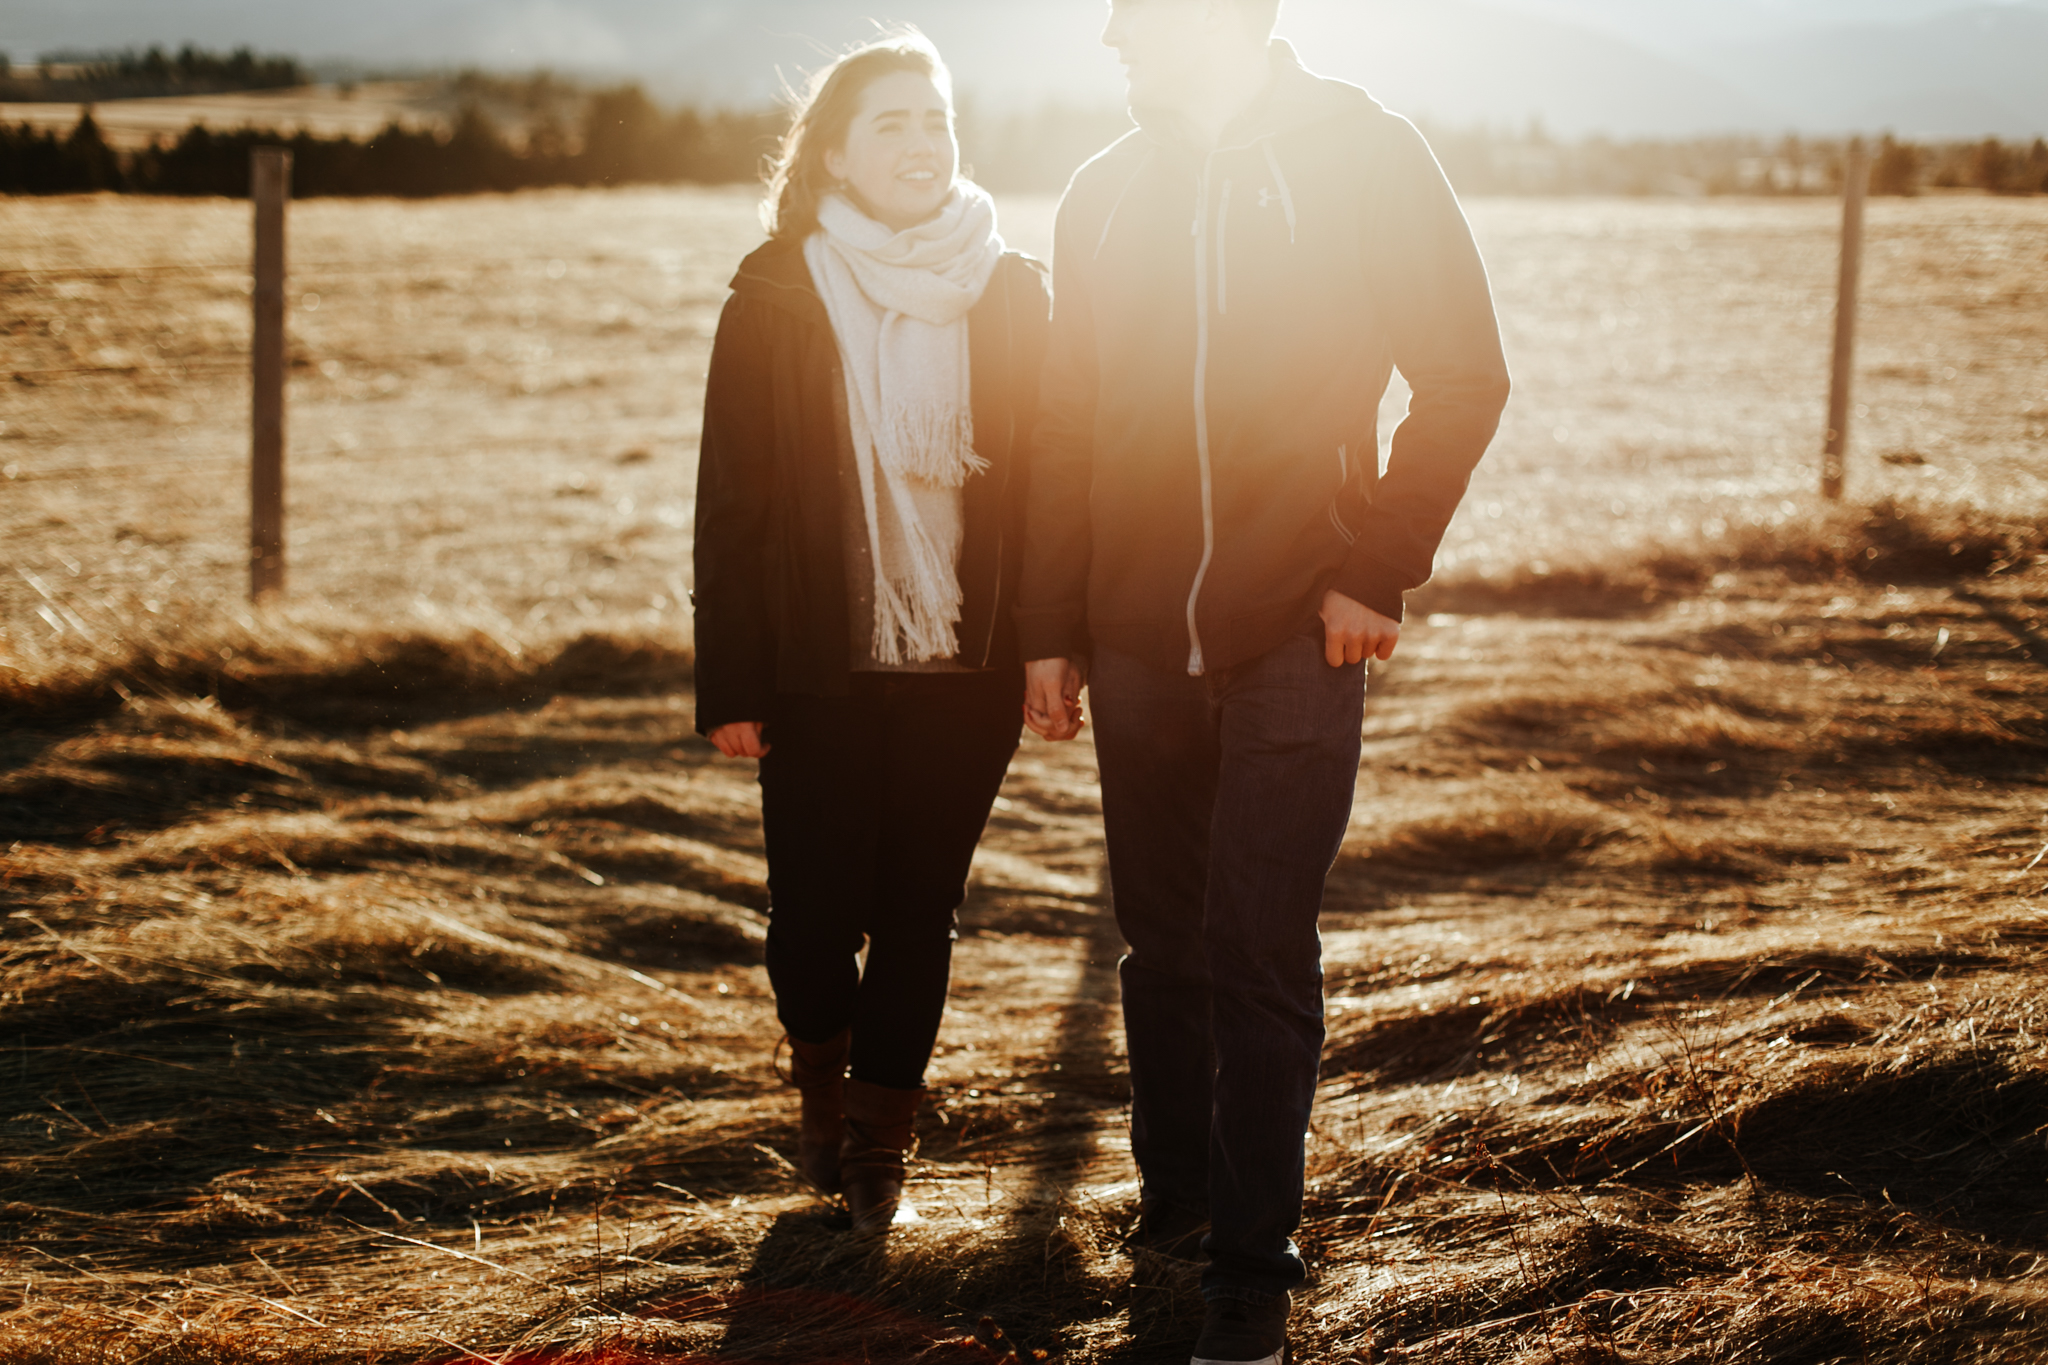 lethbridge-photographer-love-and-be-loved-photography-lundbreck-falls-engagement-clarissa-clayton-picture-image-photo--49.jpg